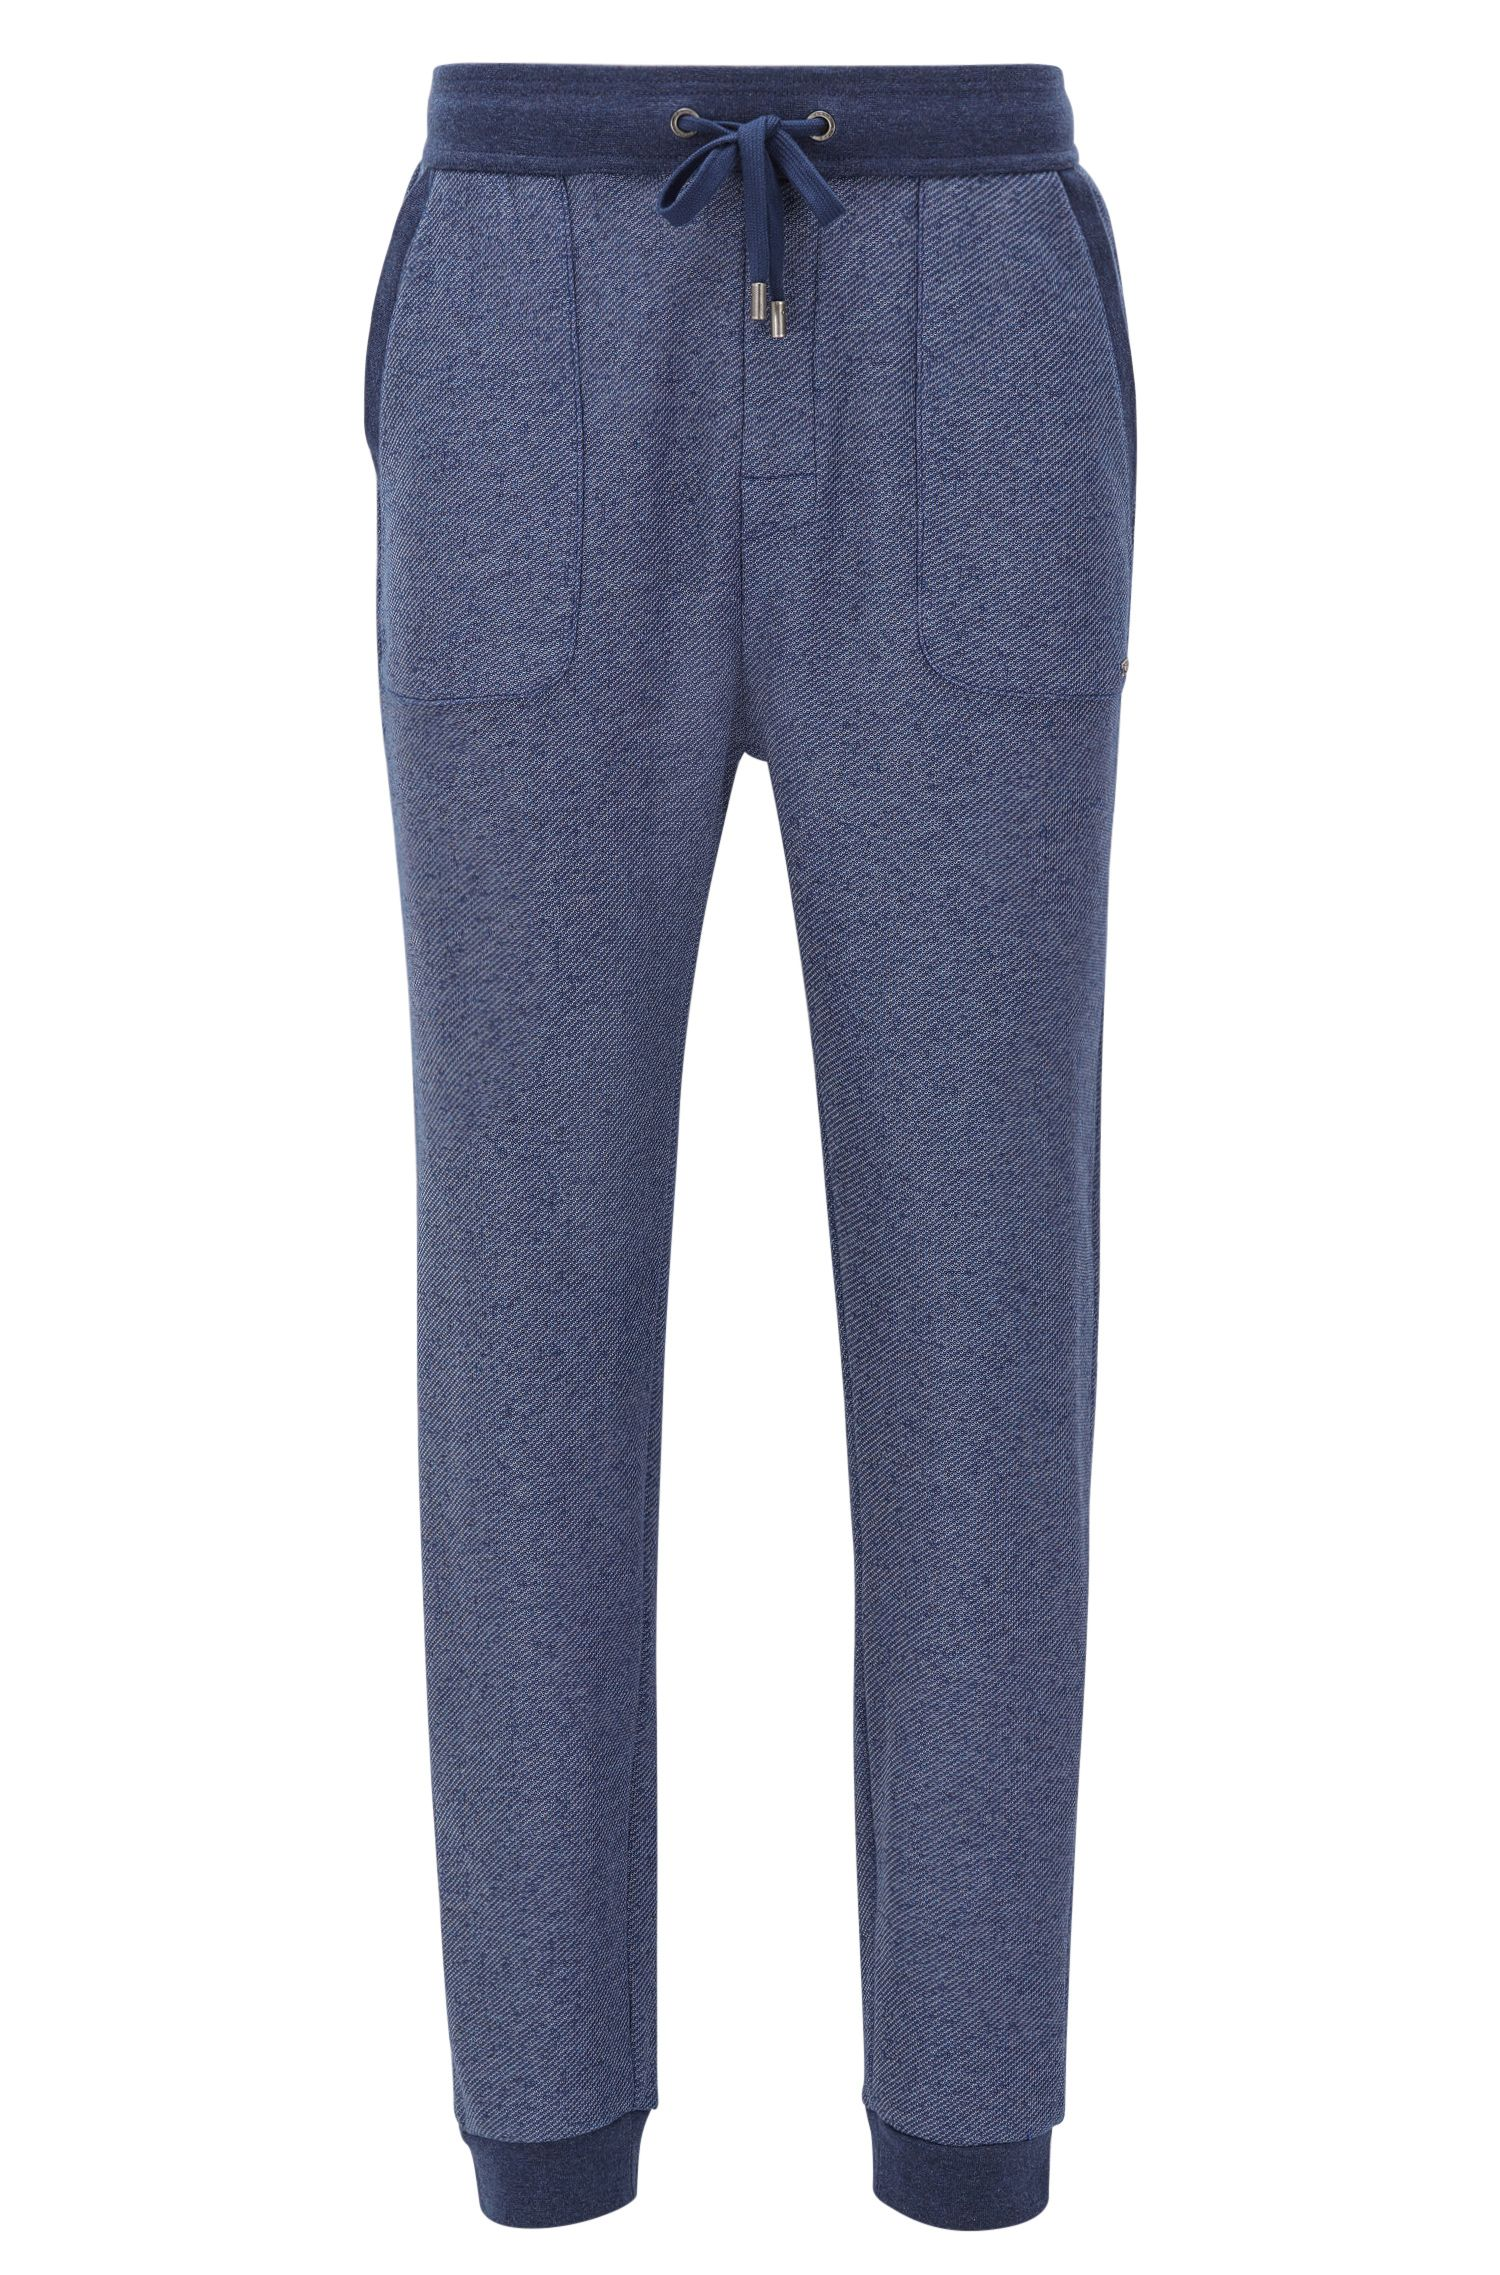 Cuffed loungewear trousers in a structured cotton blend